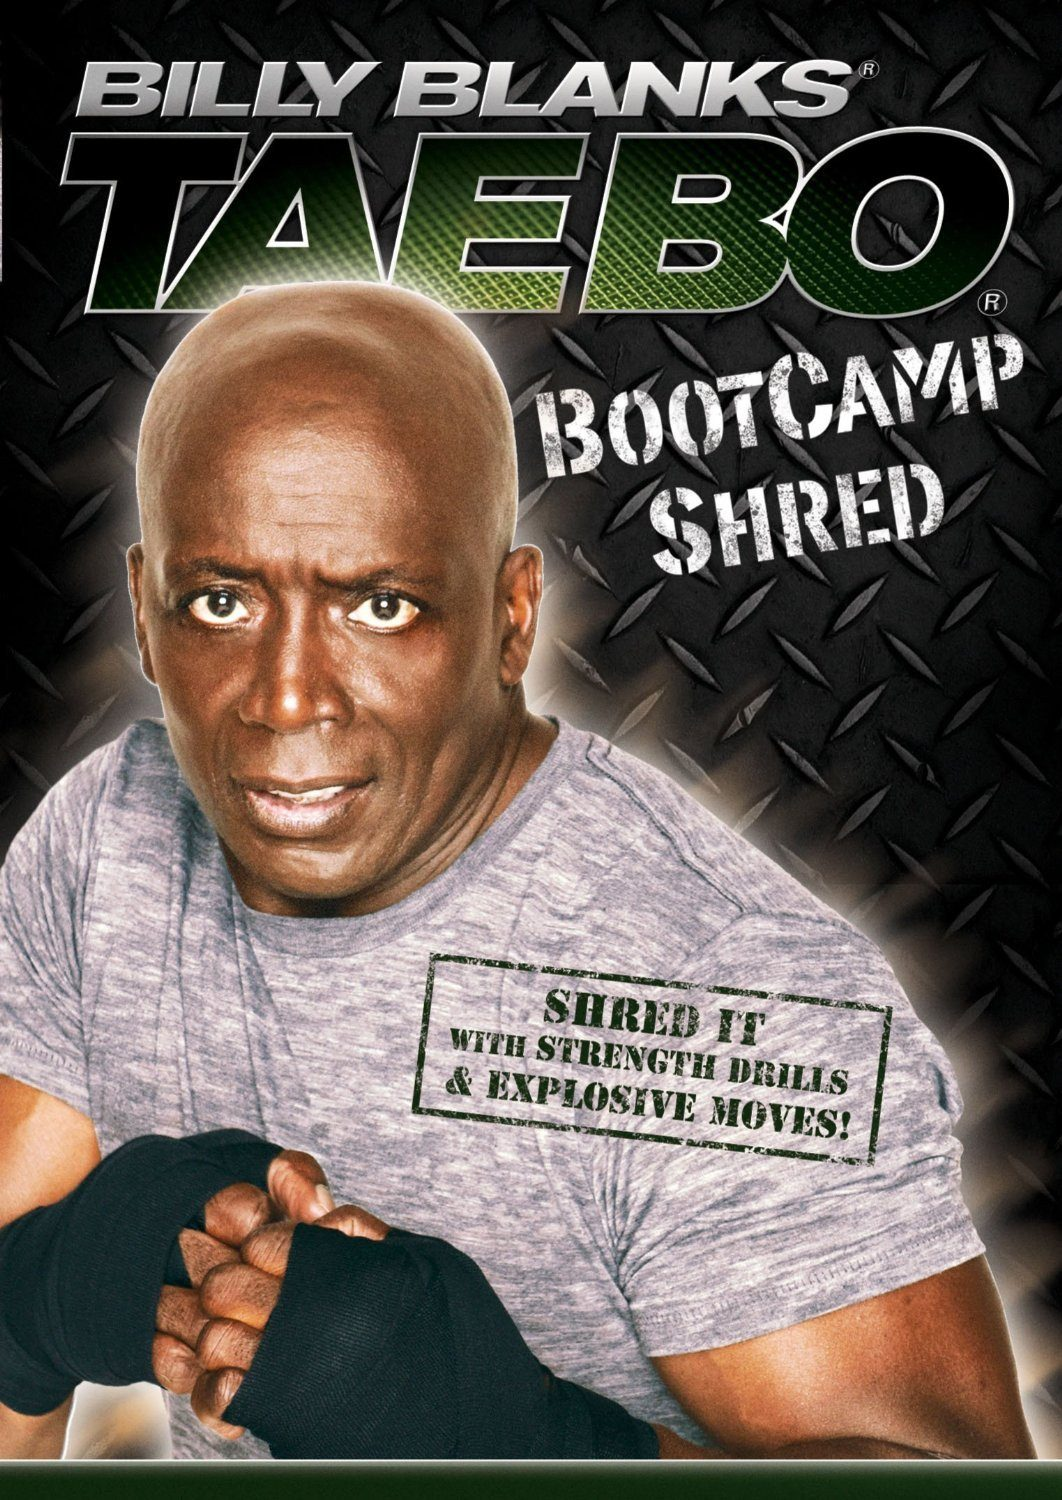 billy blanks jr